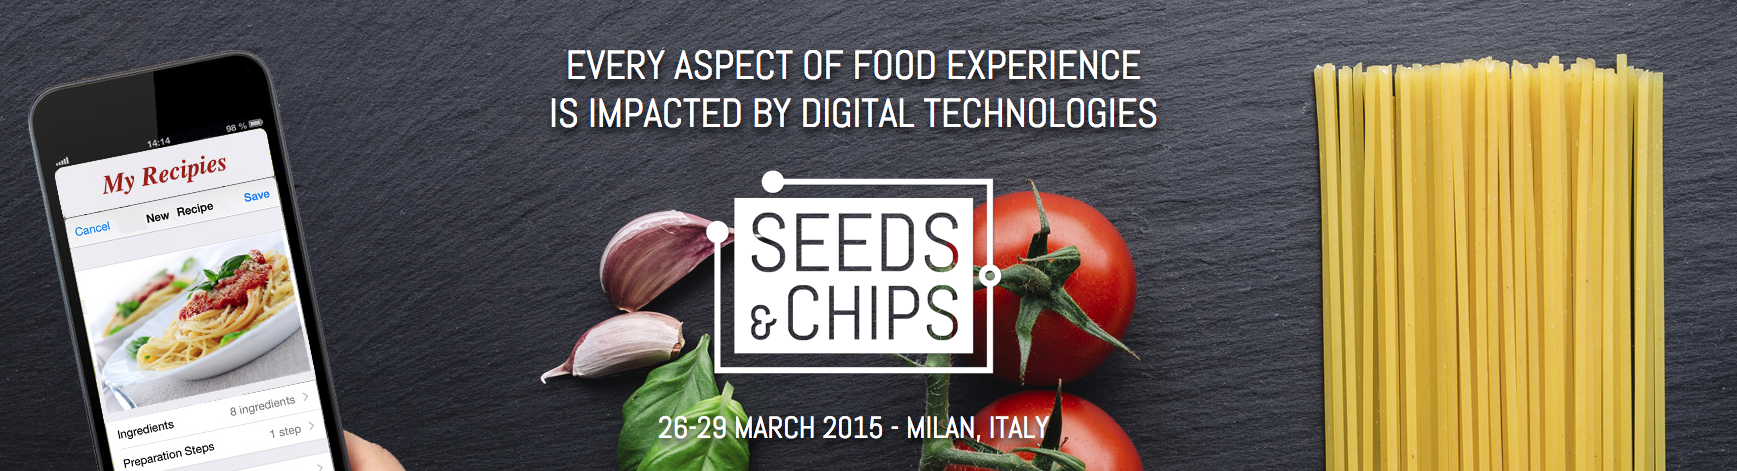 https://www.dotmug.net/wp-content/uploads/2015/03/seedschips-milan.png